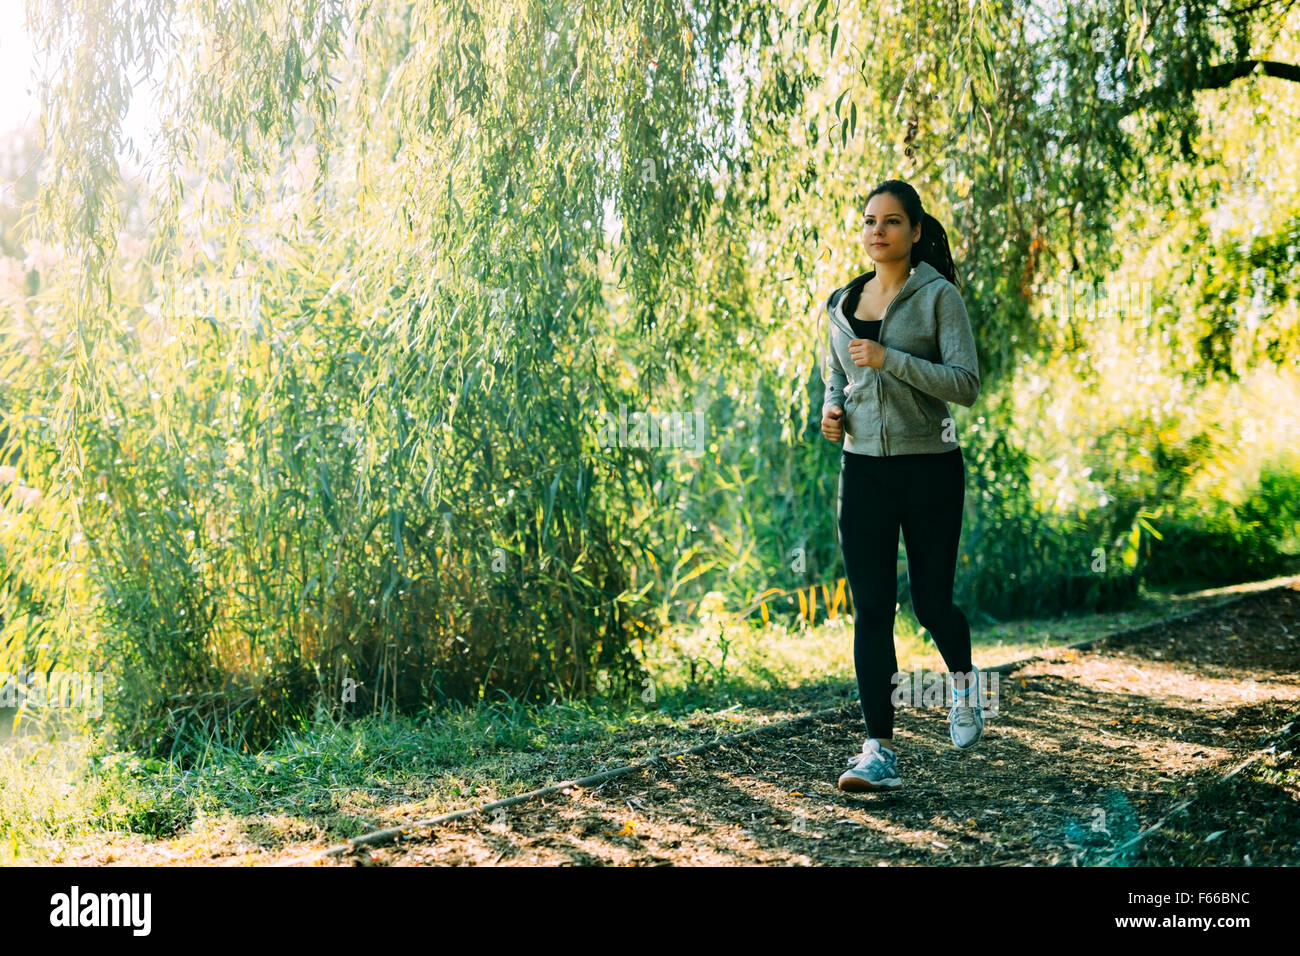 Fit woman jogging outdoors in nature Stock Photo